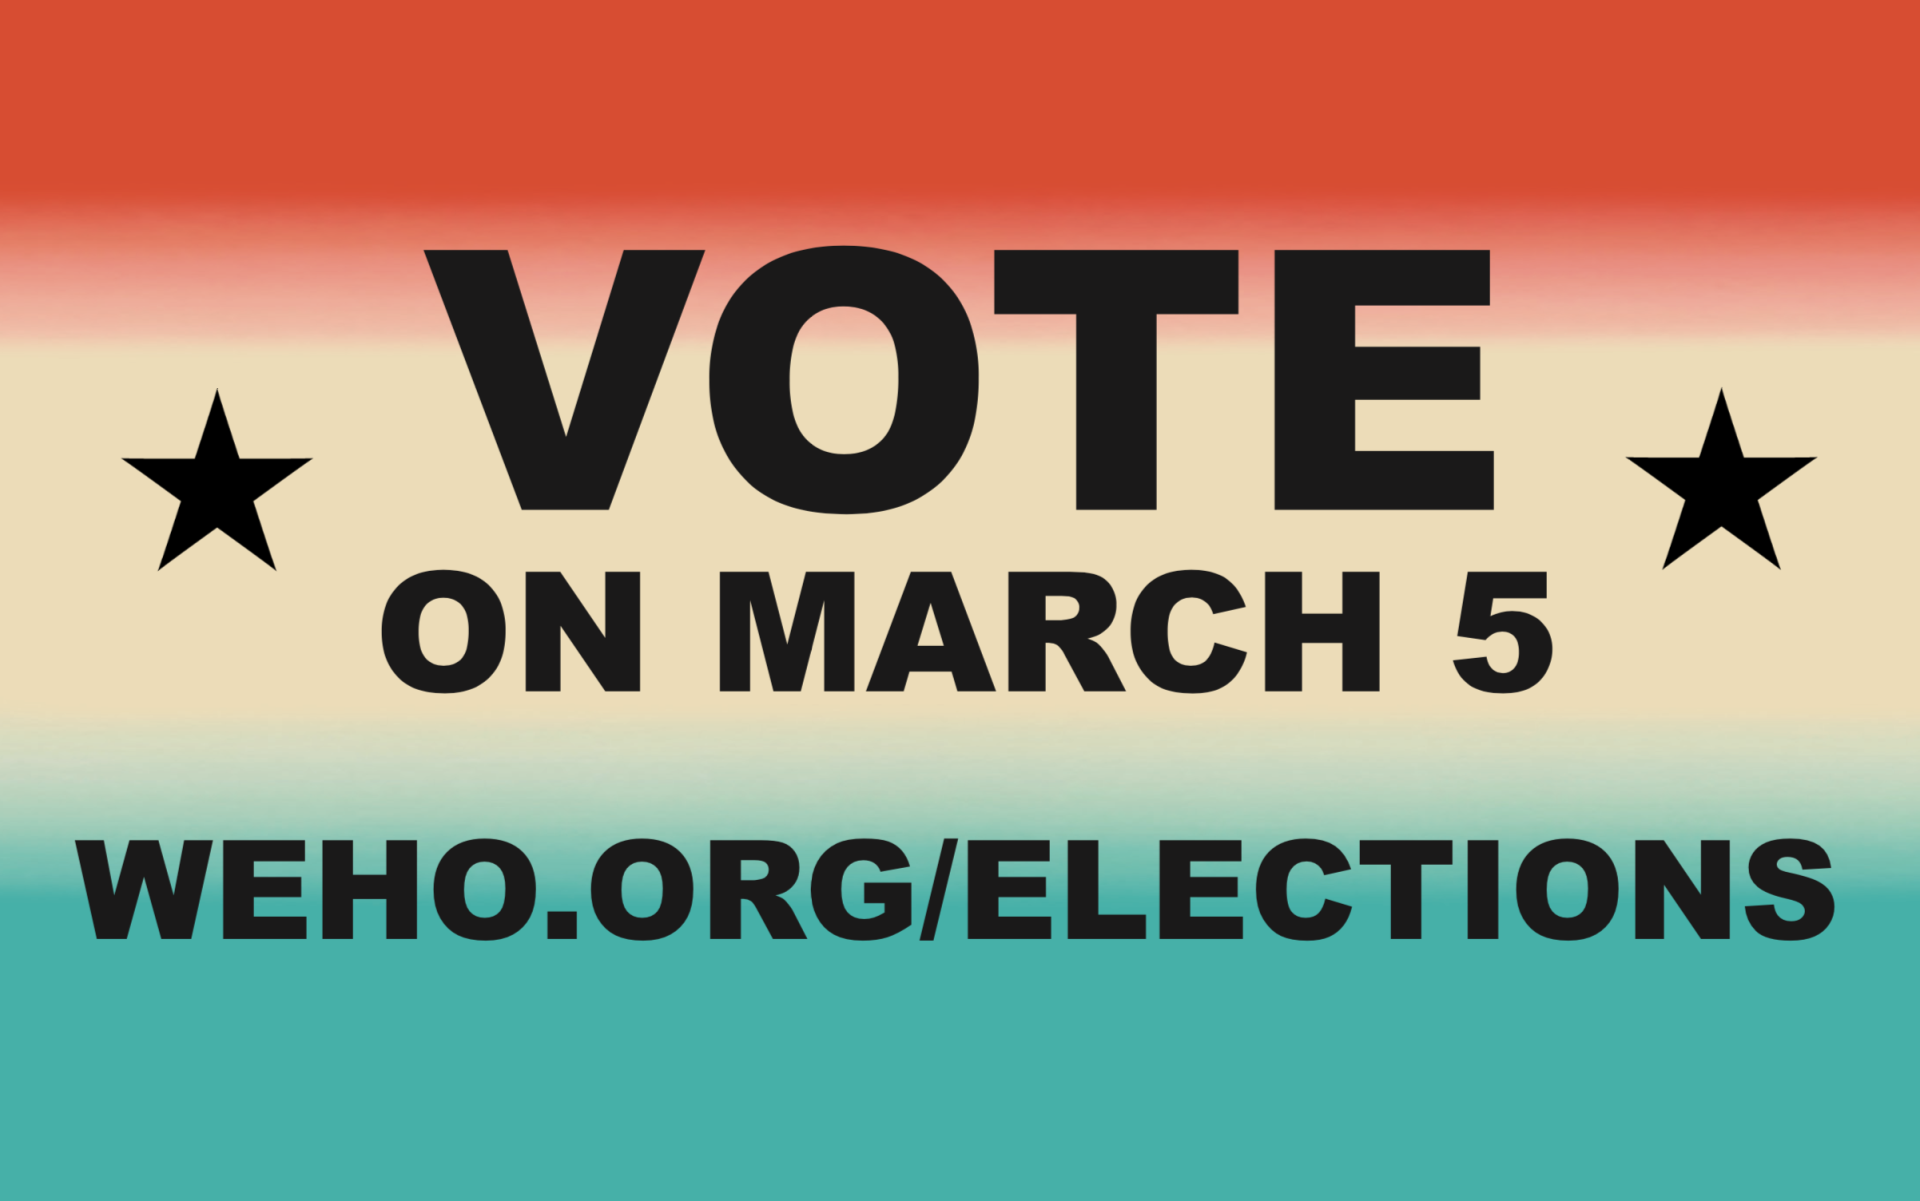 City of West Hollywood General Municipal Election Will Take Place on Tuesday, March 5